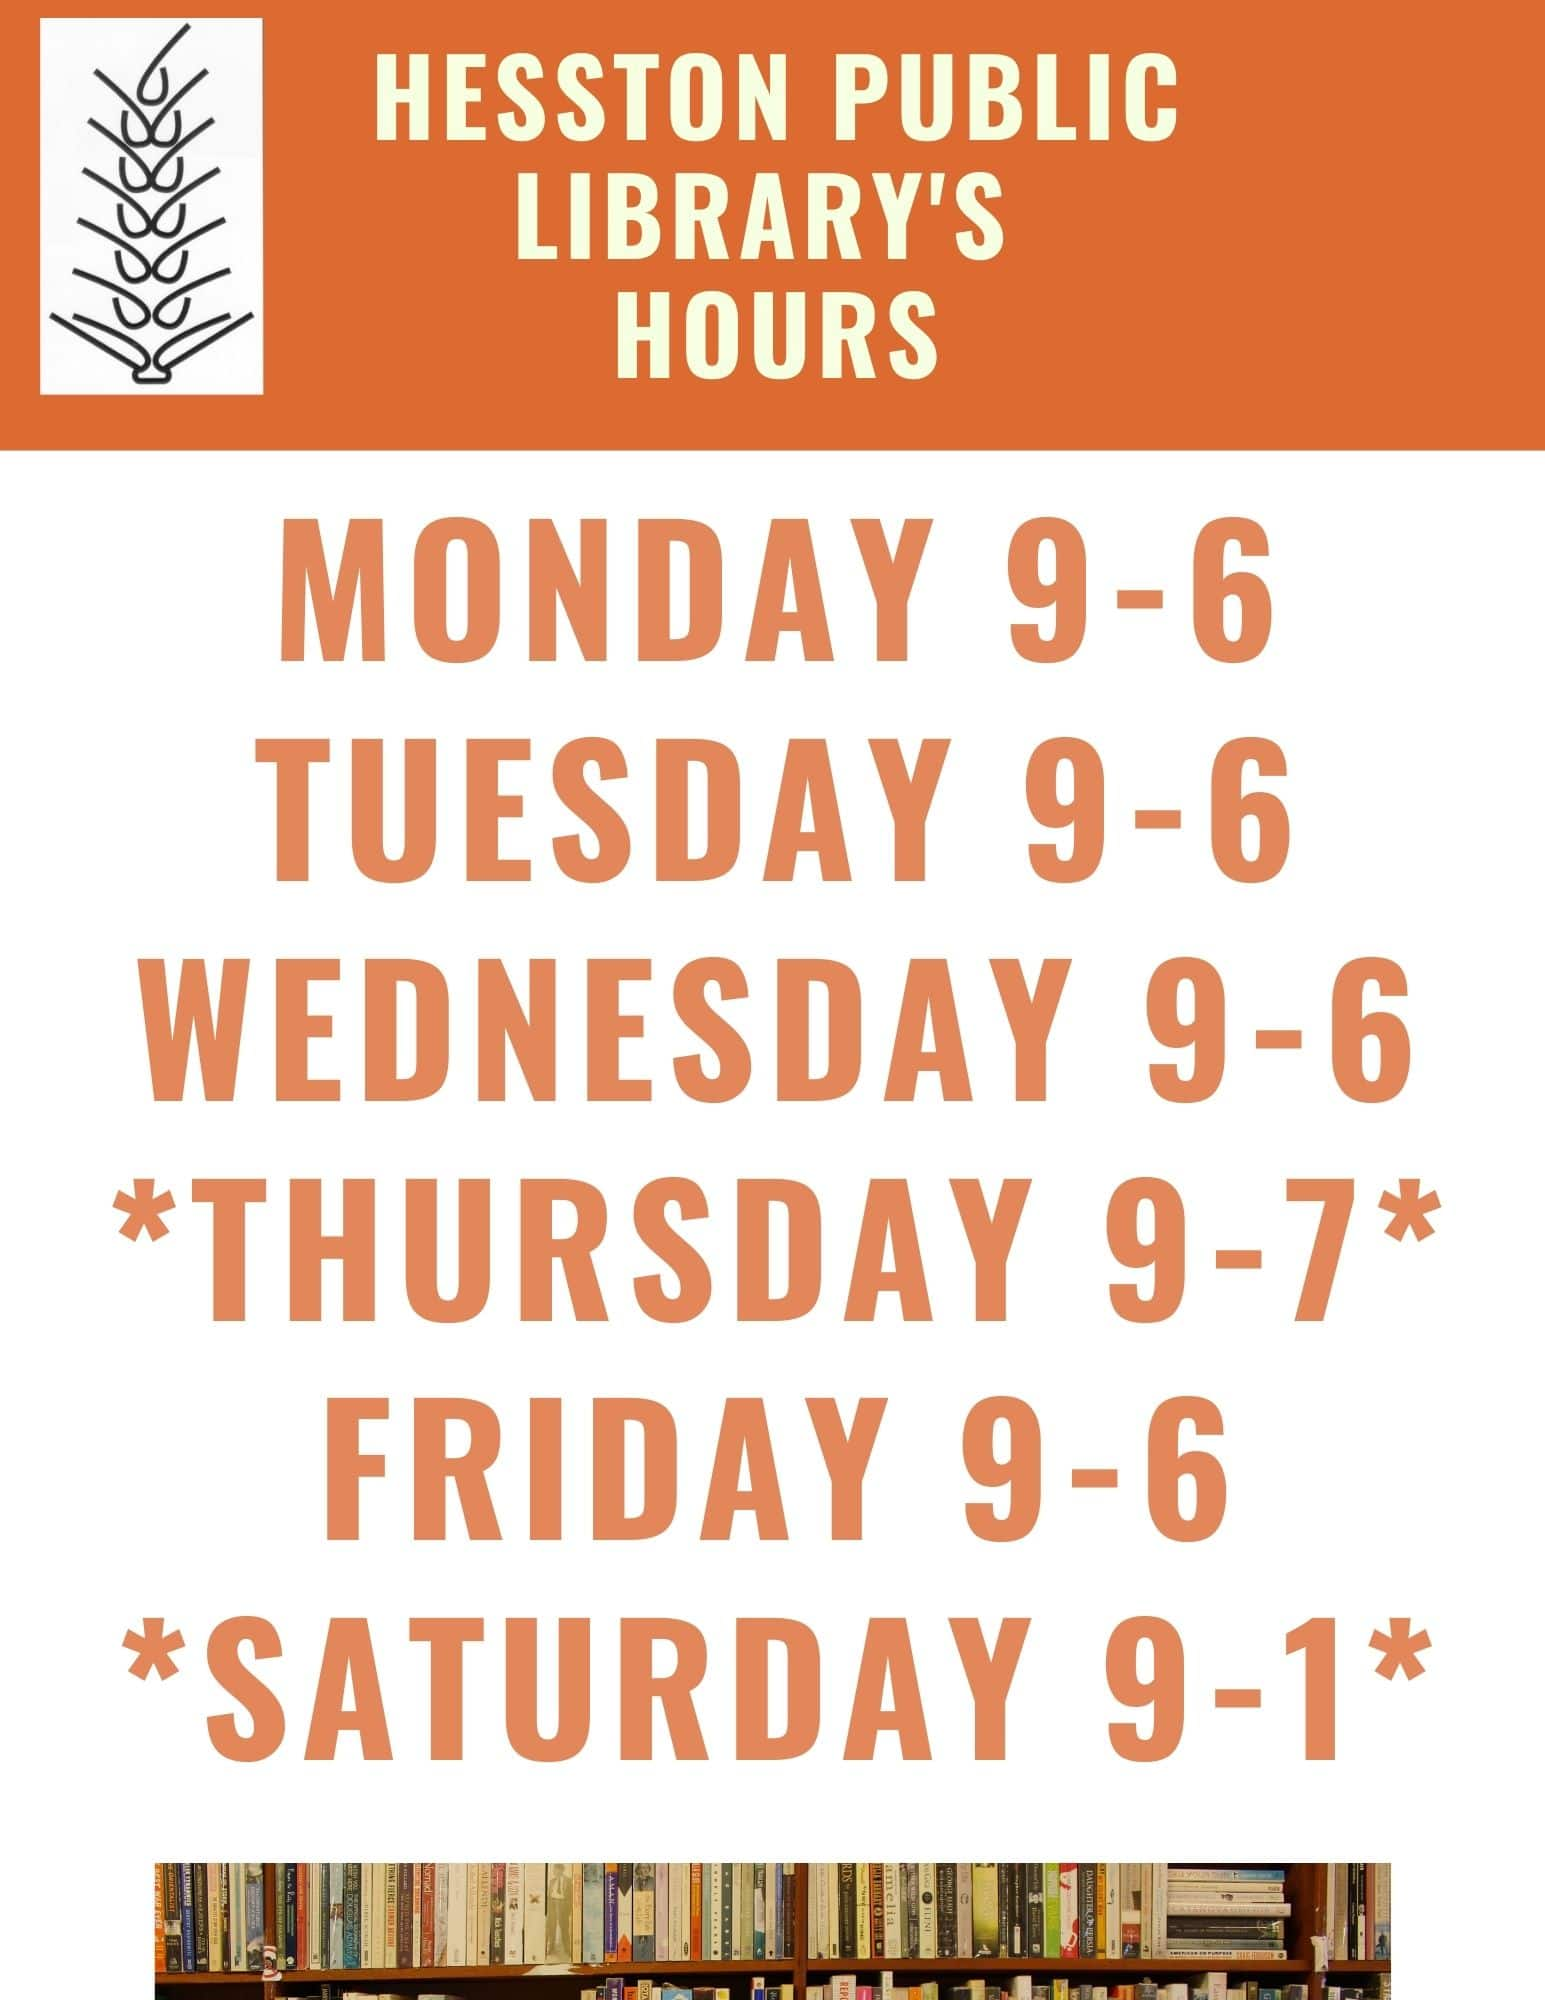 New Hours Starting April 1